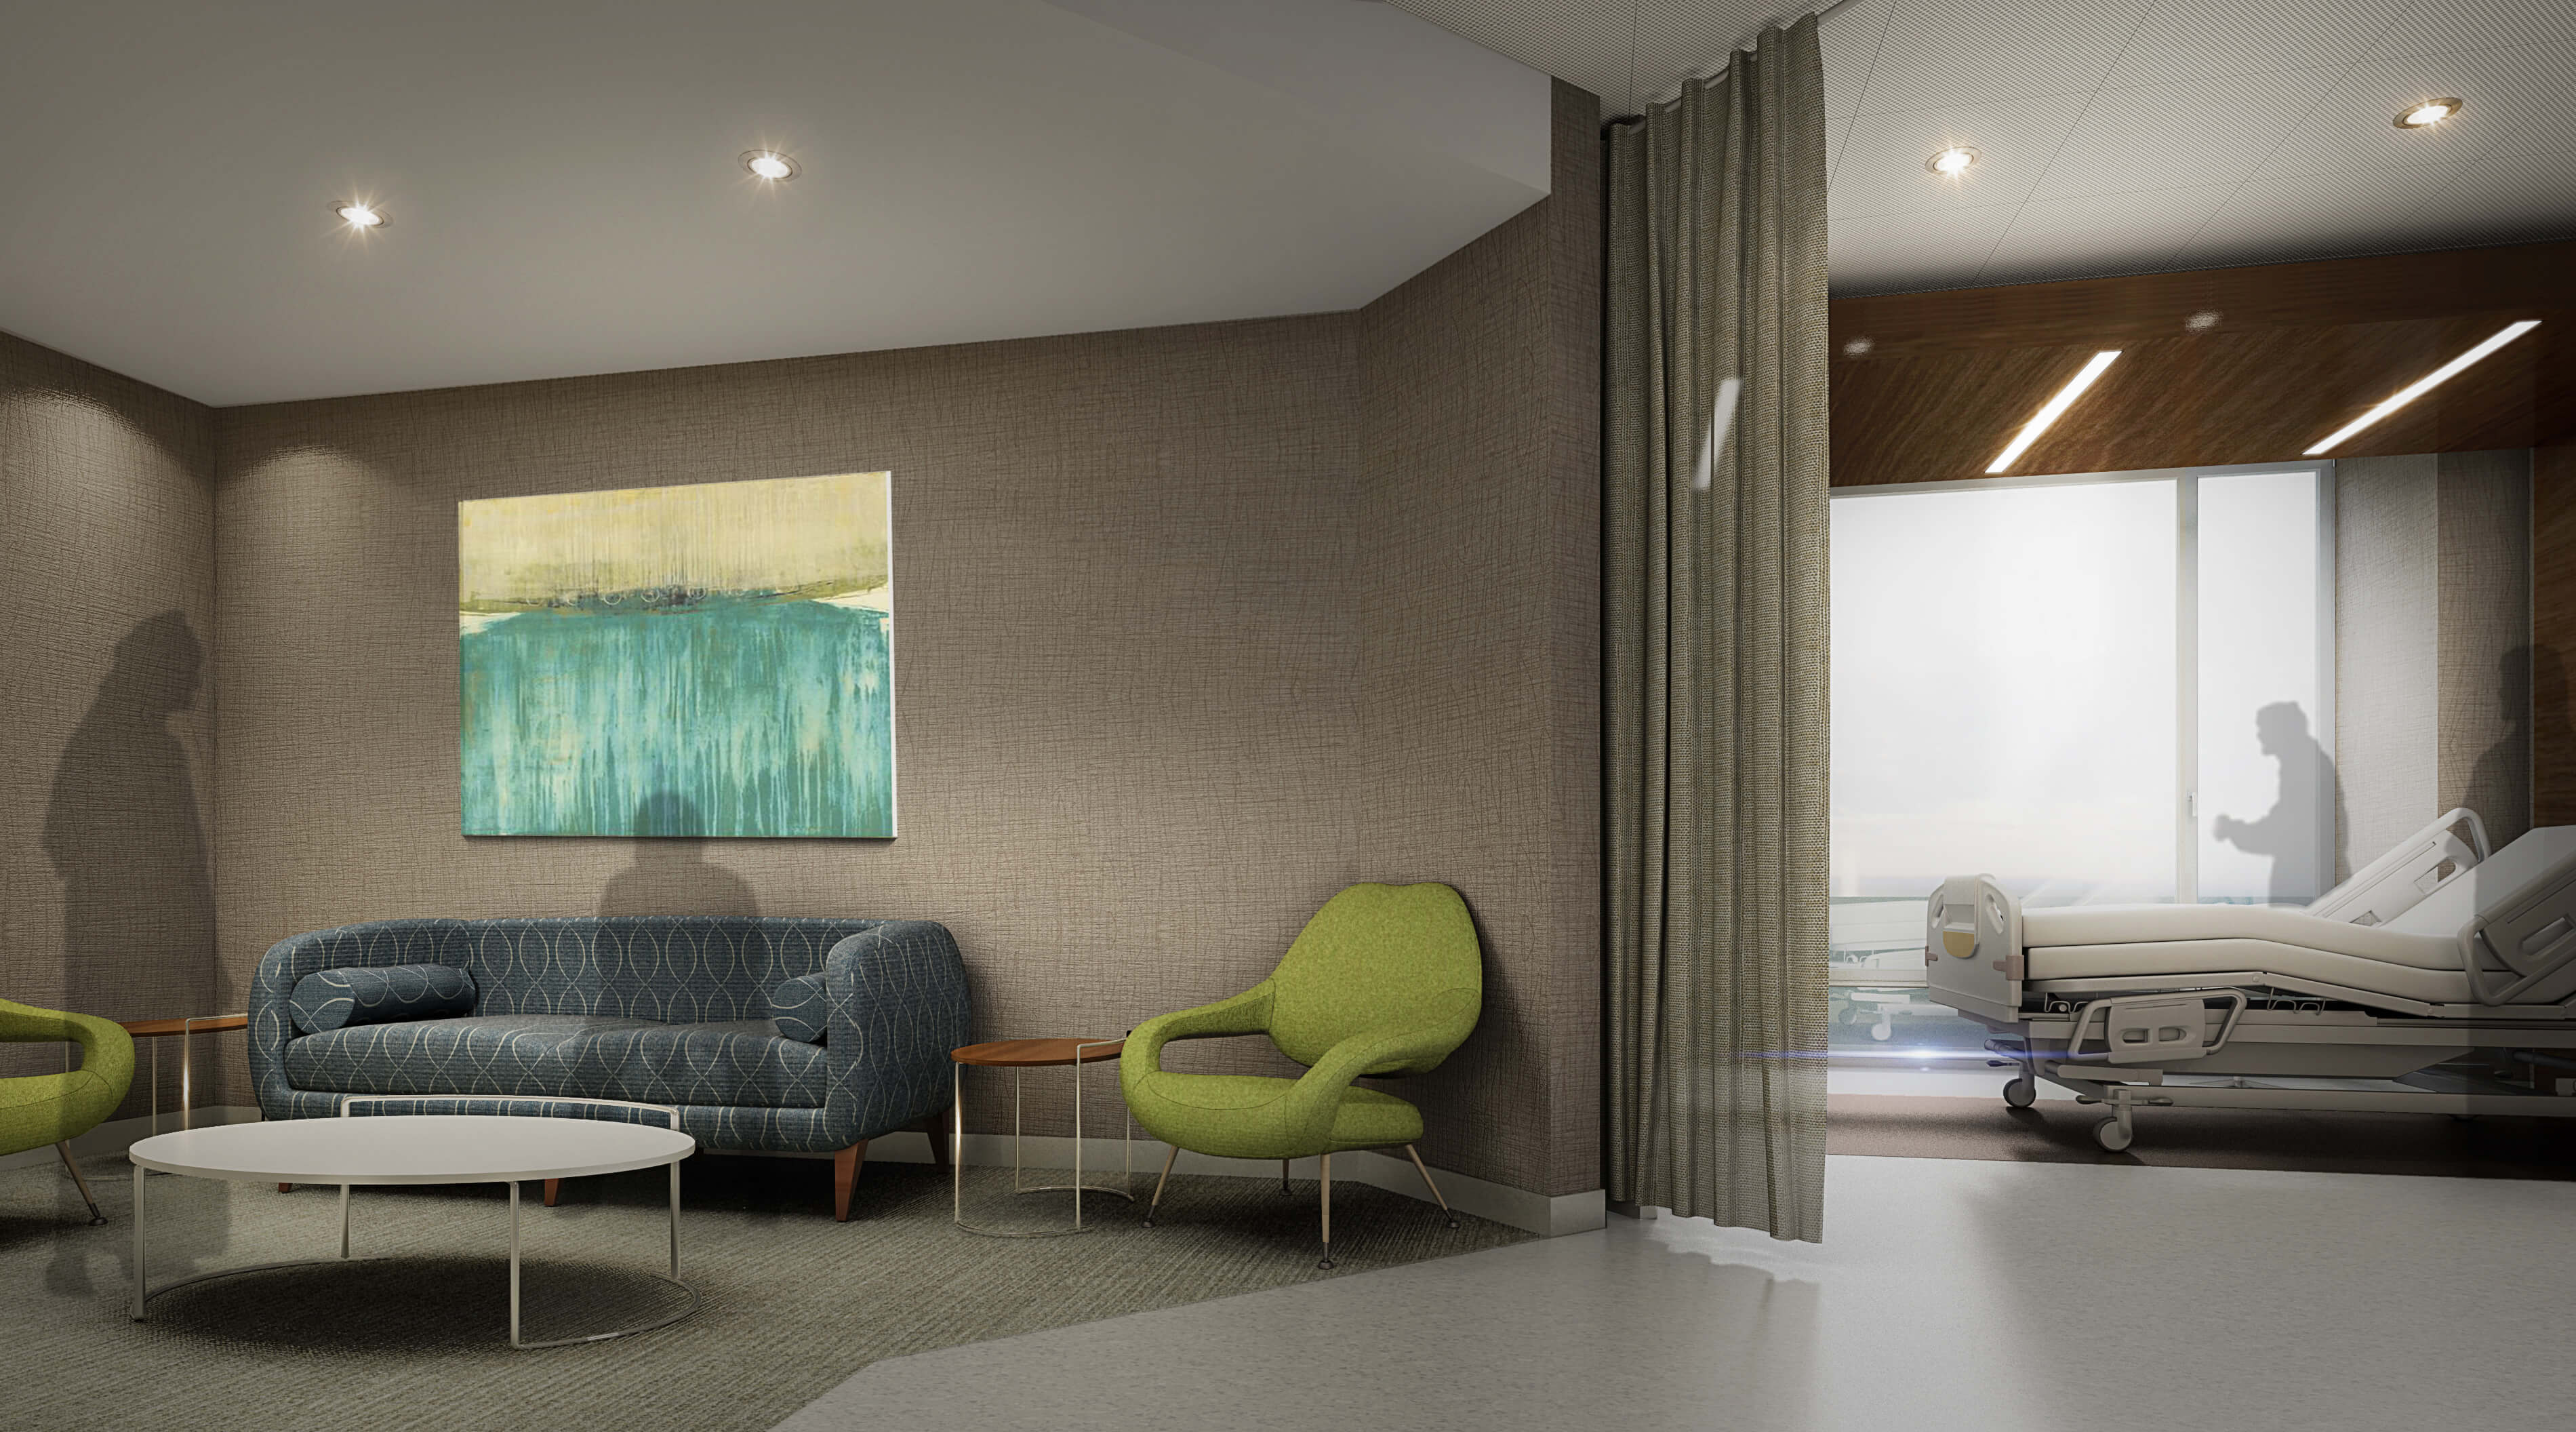 12-1b-executive-room-rendering-2